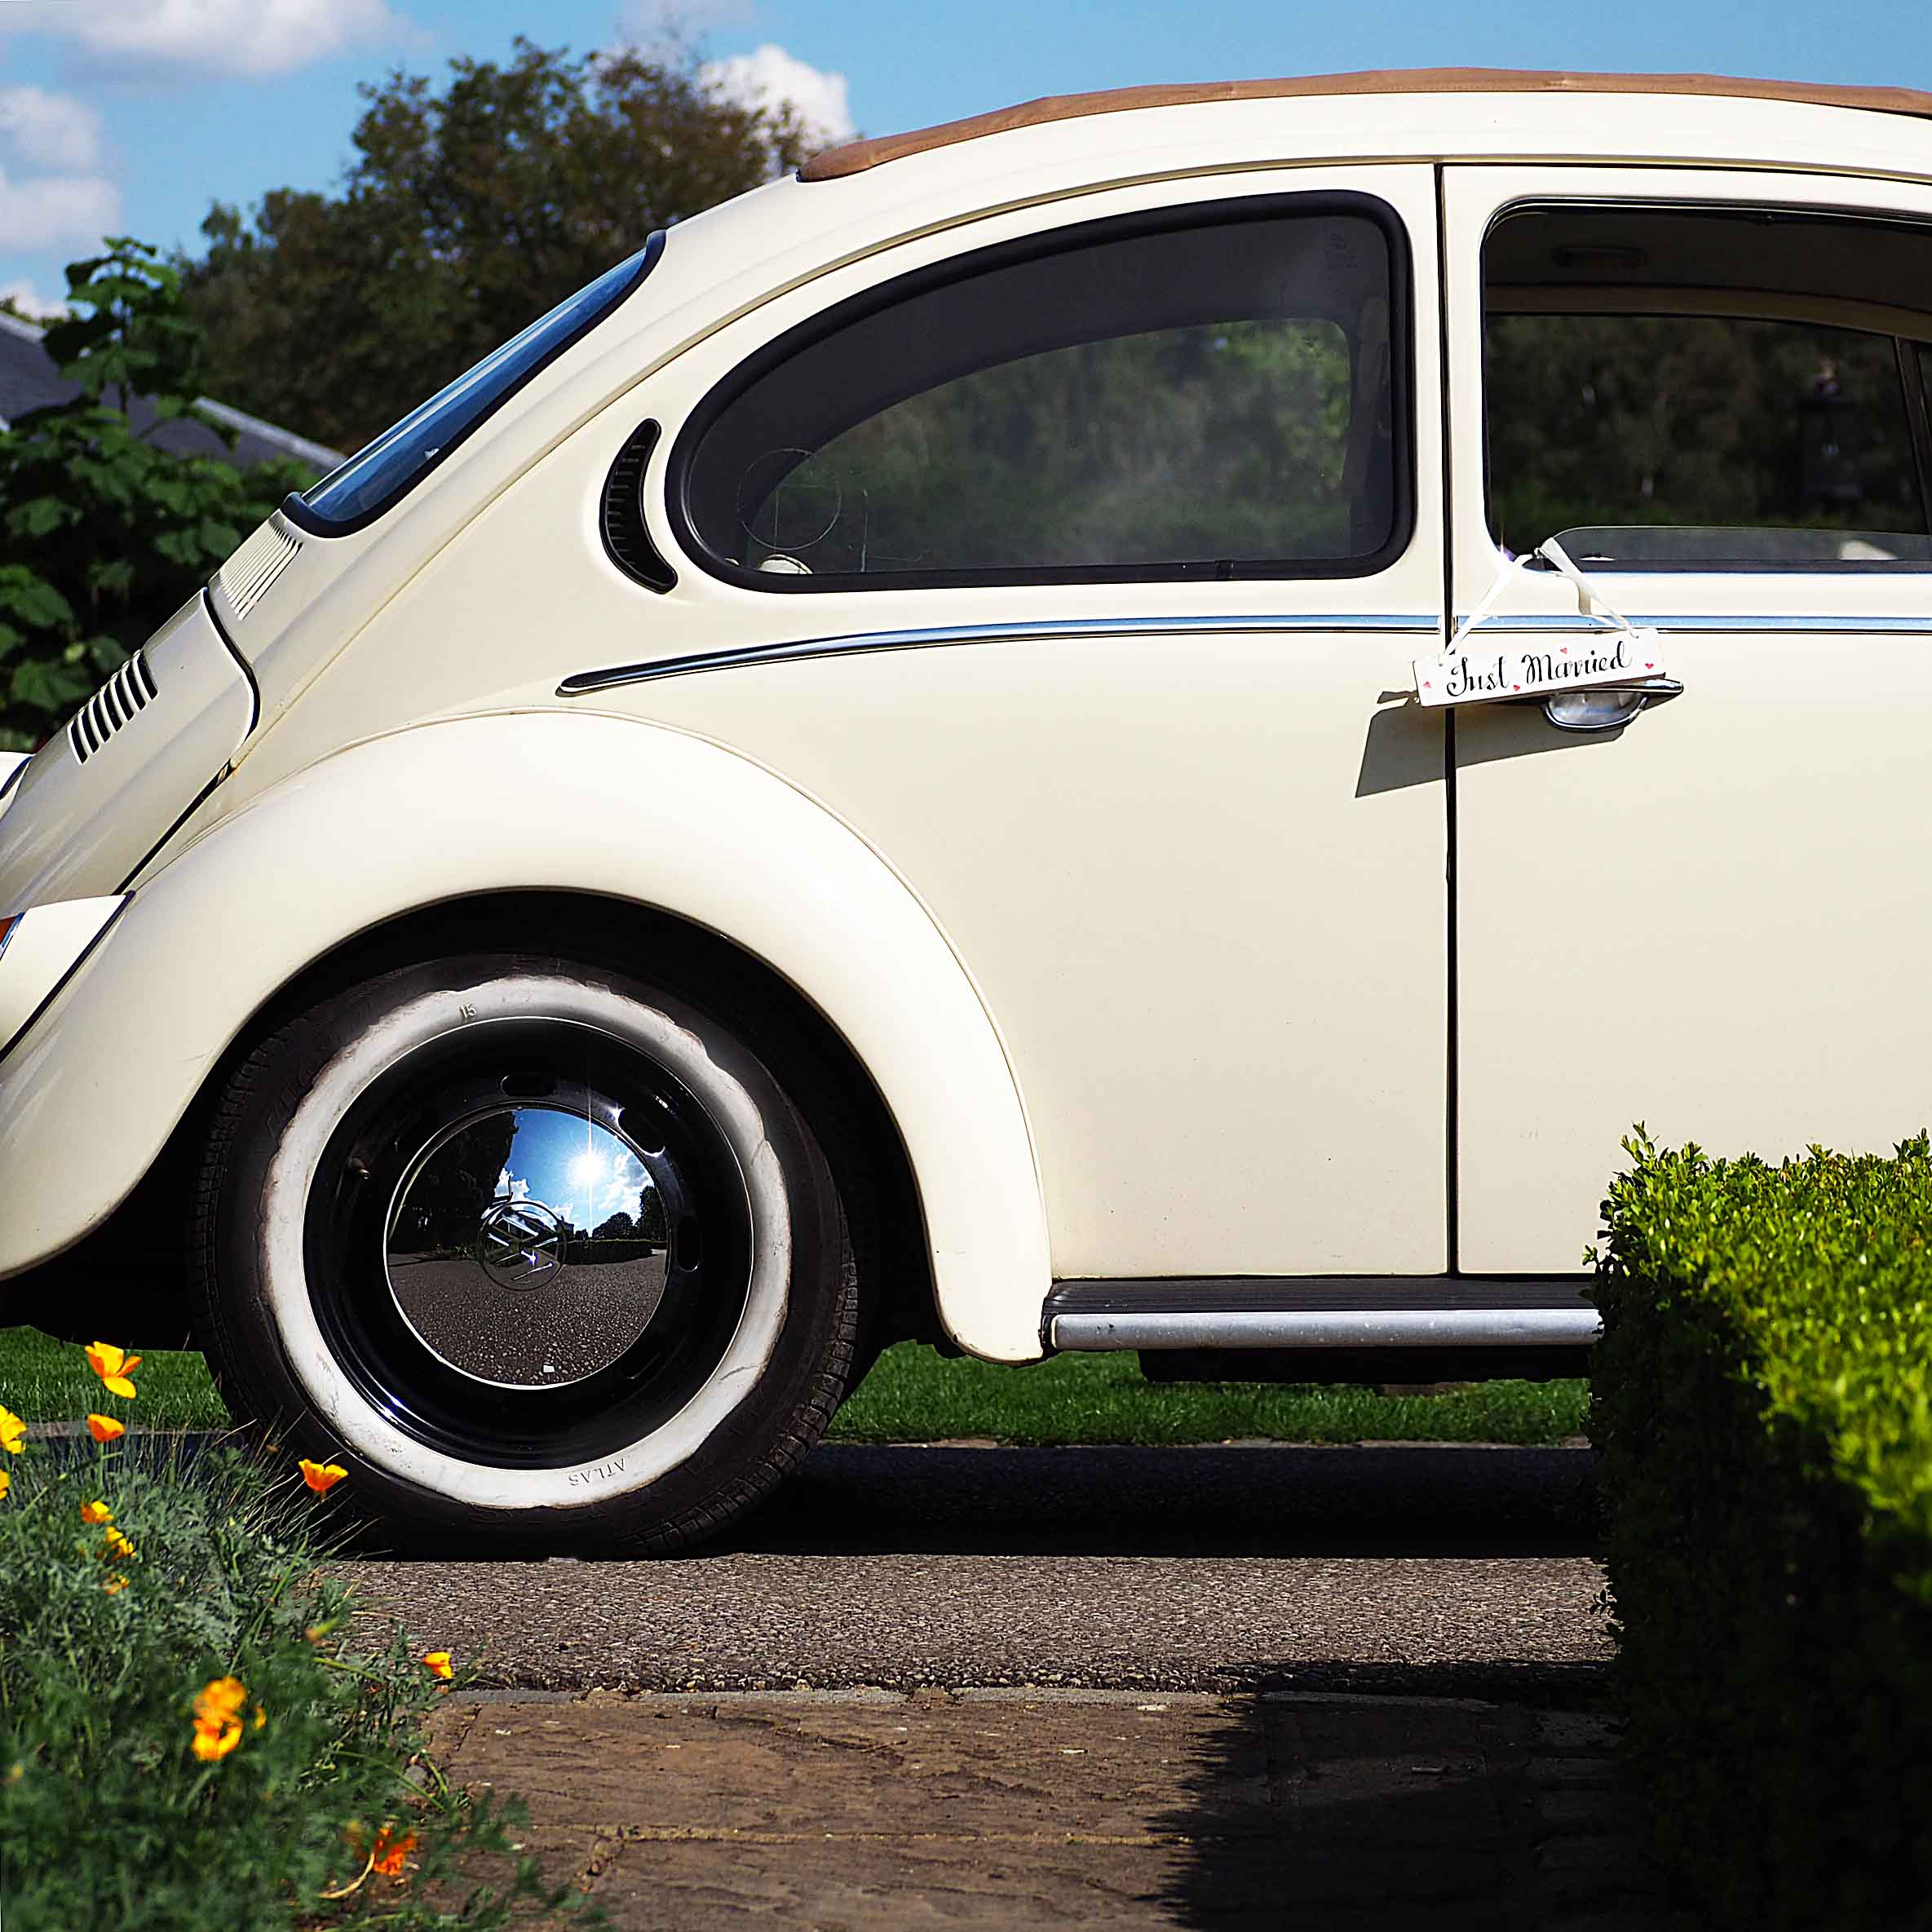 Arriving in style in a Volkswagen Beetle wedding car.